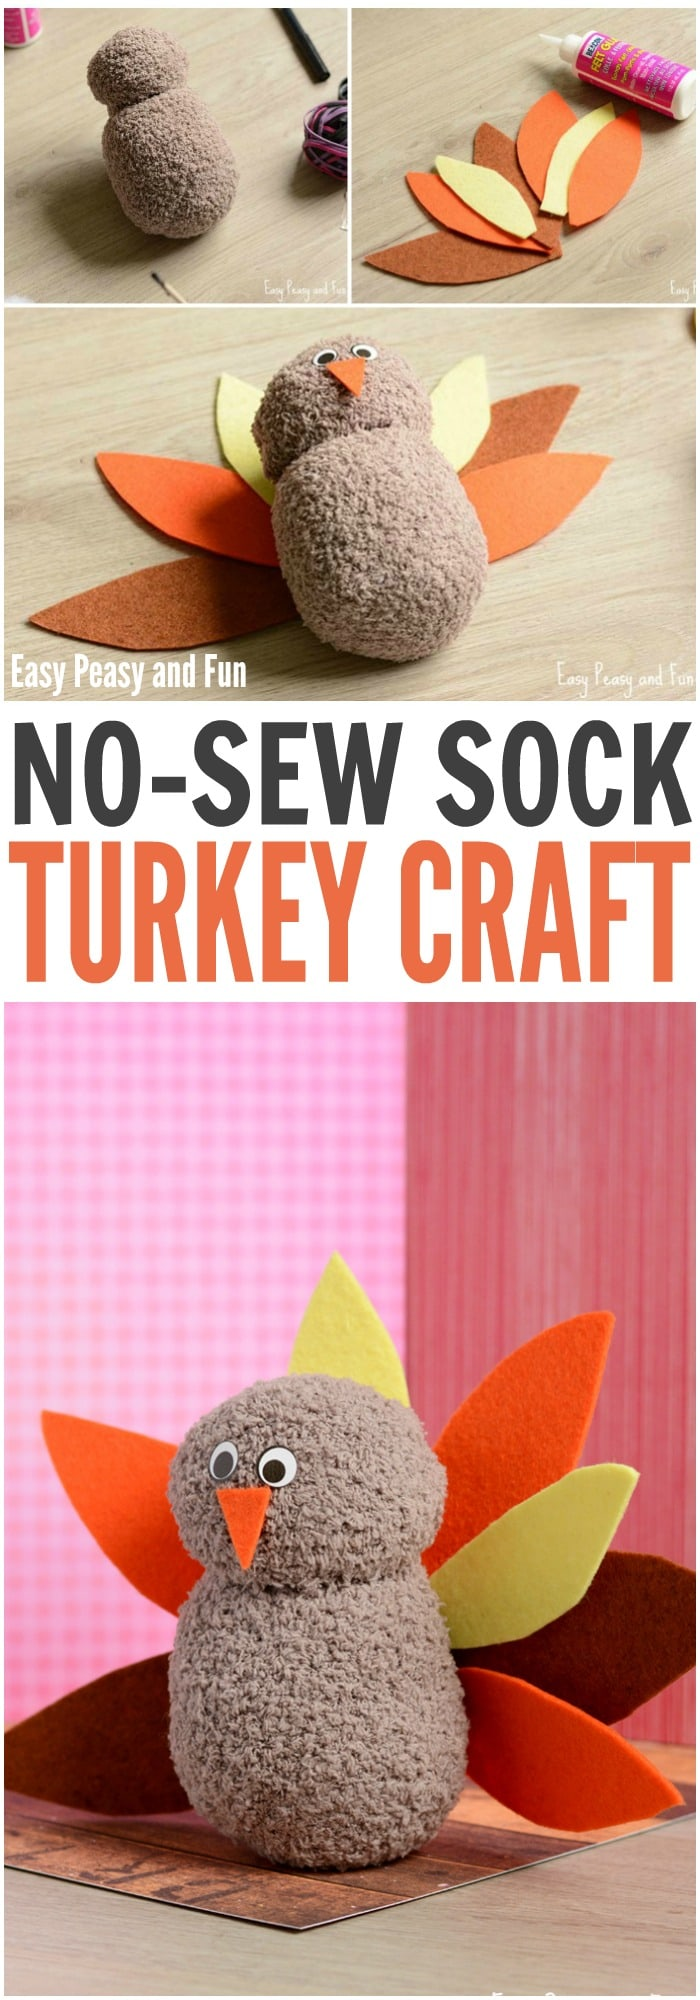 DIY No-Sew Sock Turkey Craft for your Little Ones